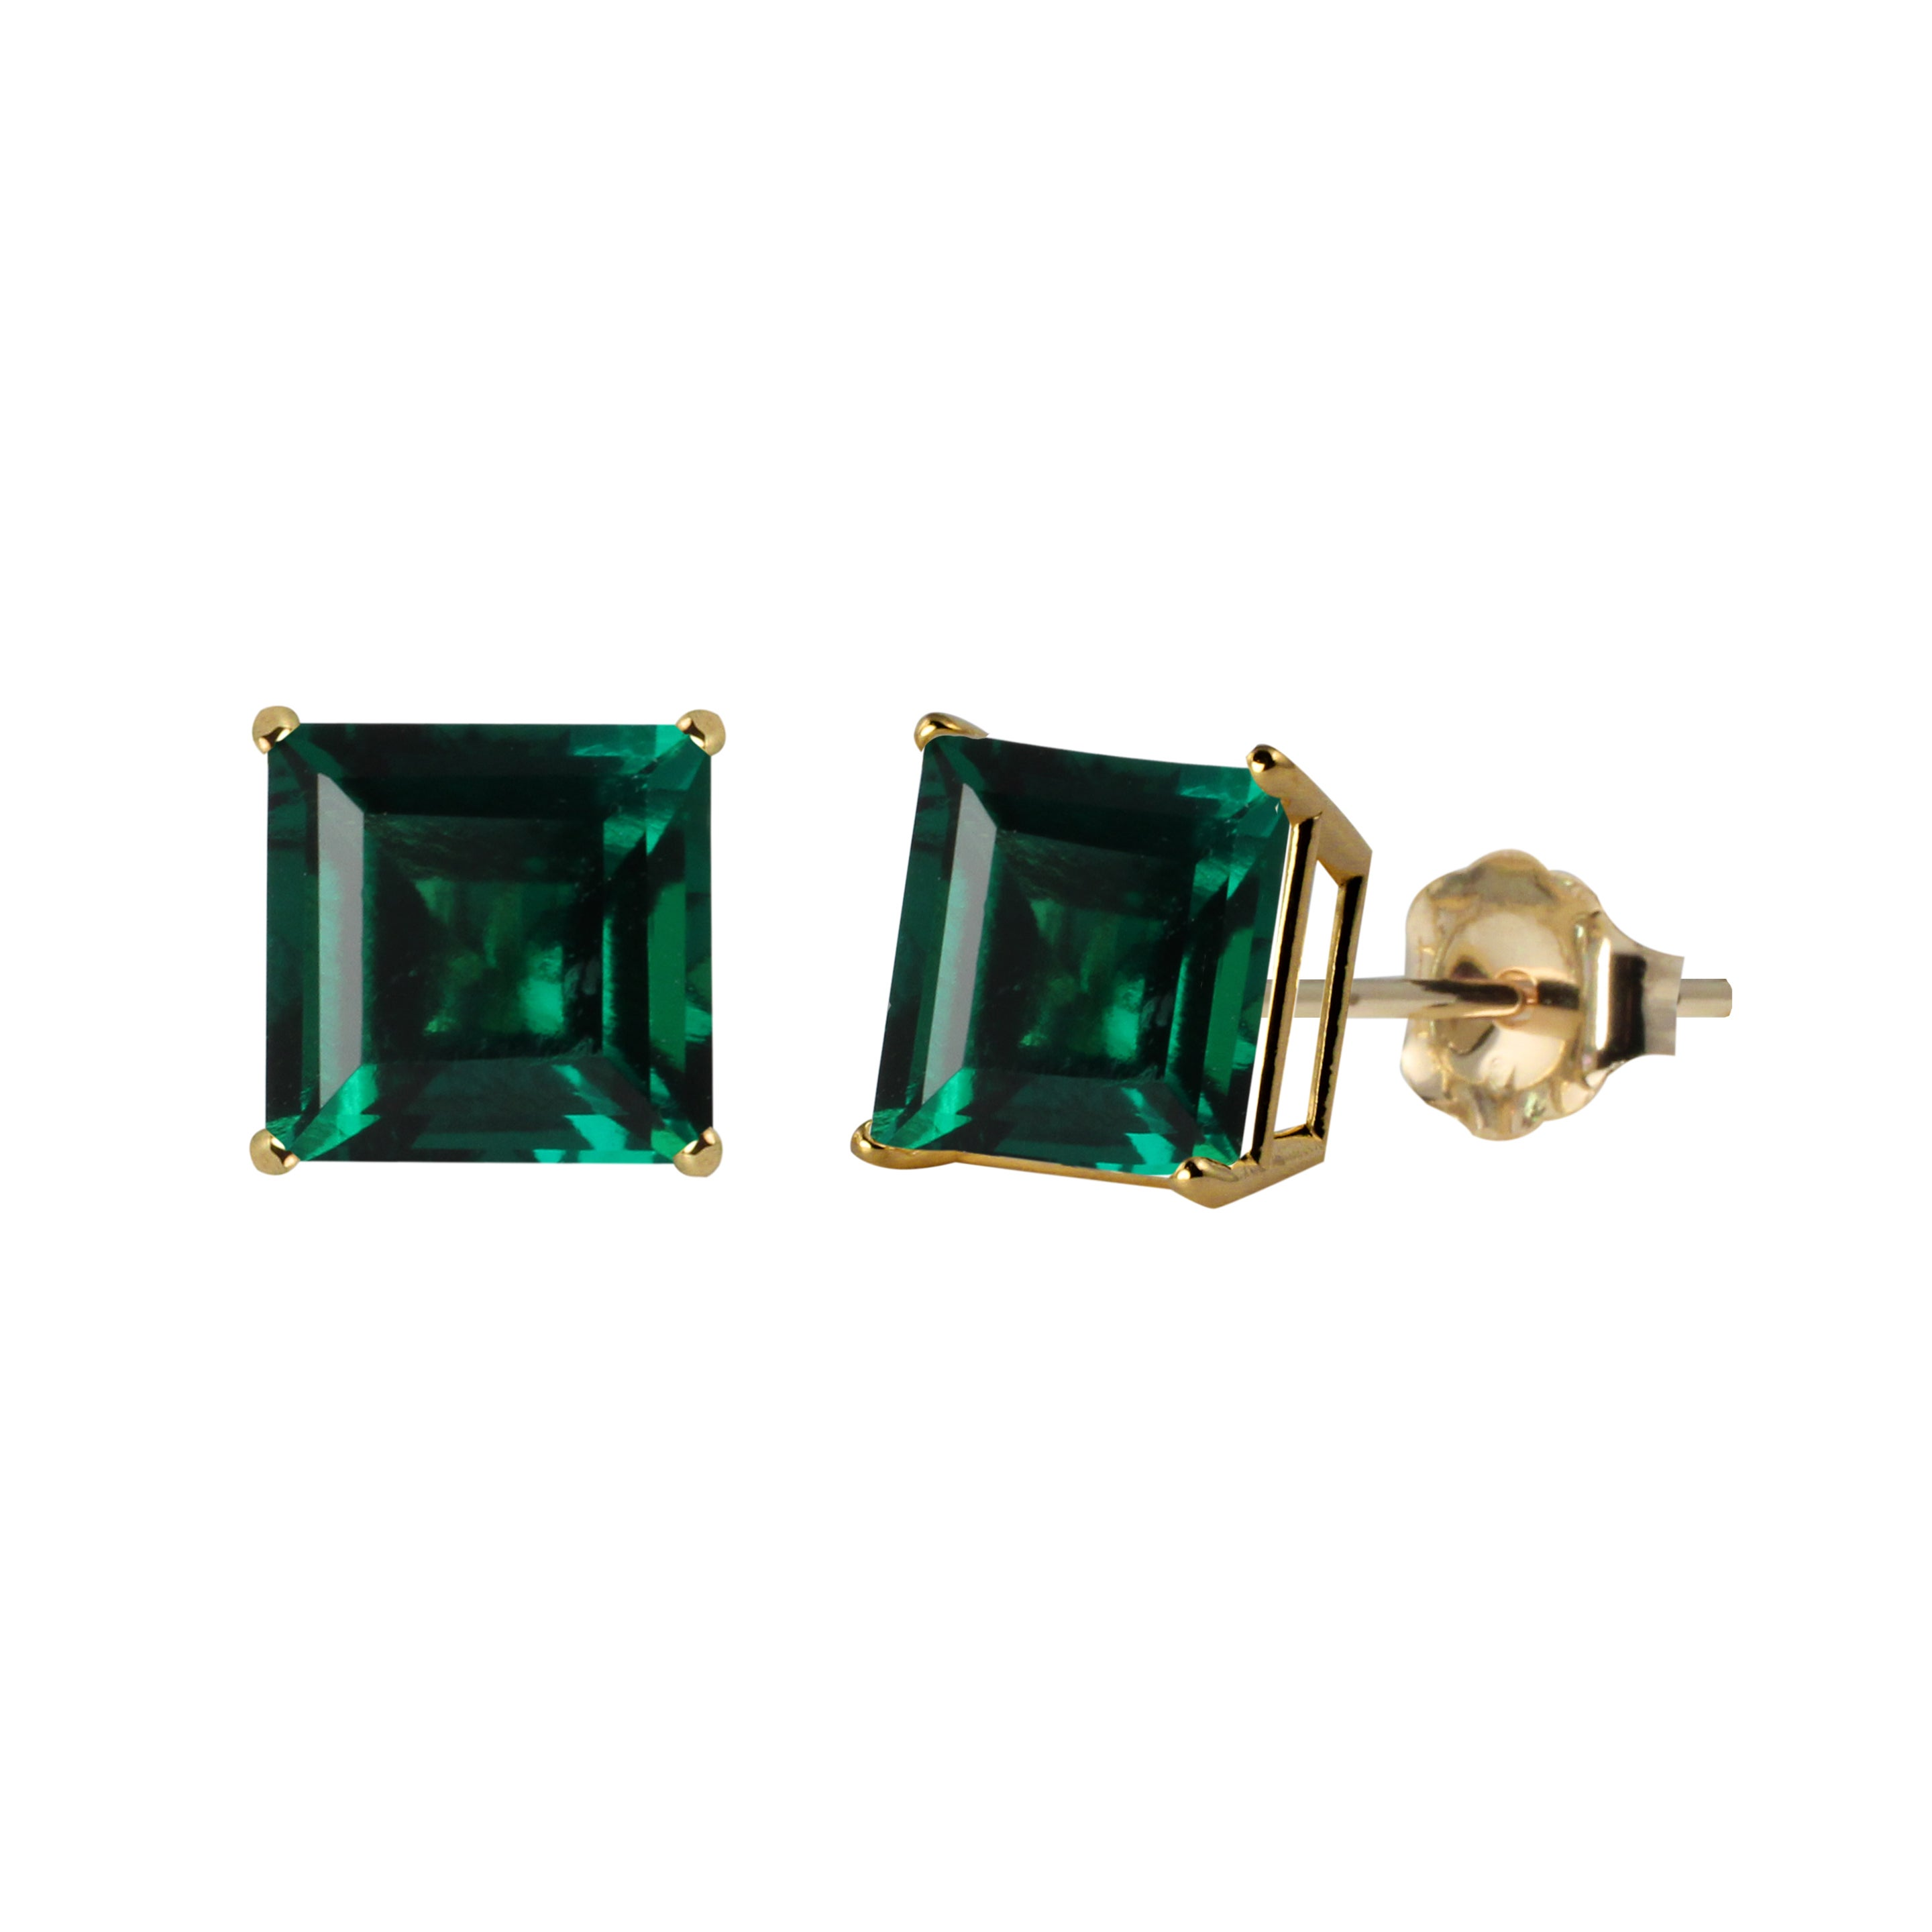 valley emerald gems treated swat pin pinterest from pakistan and minerals heat